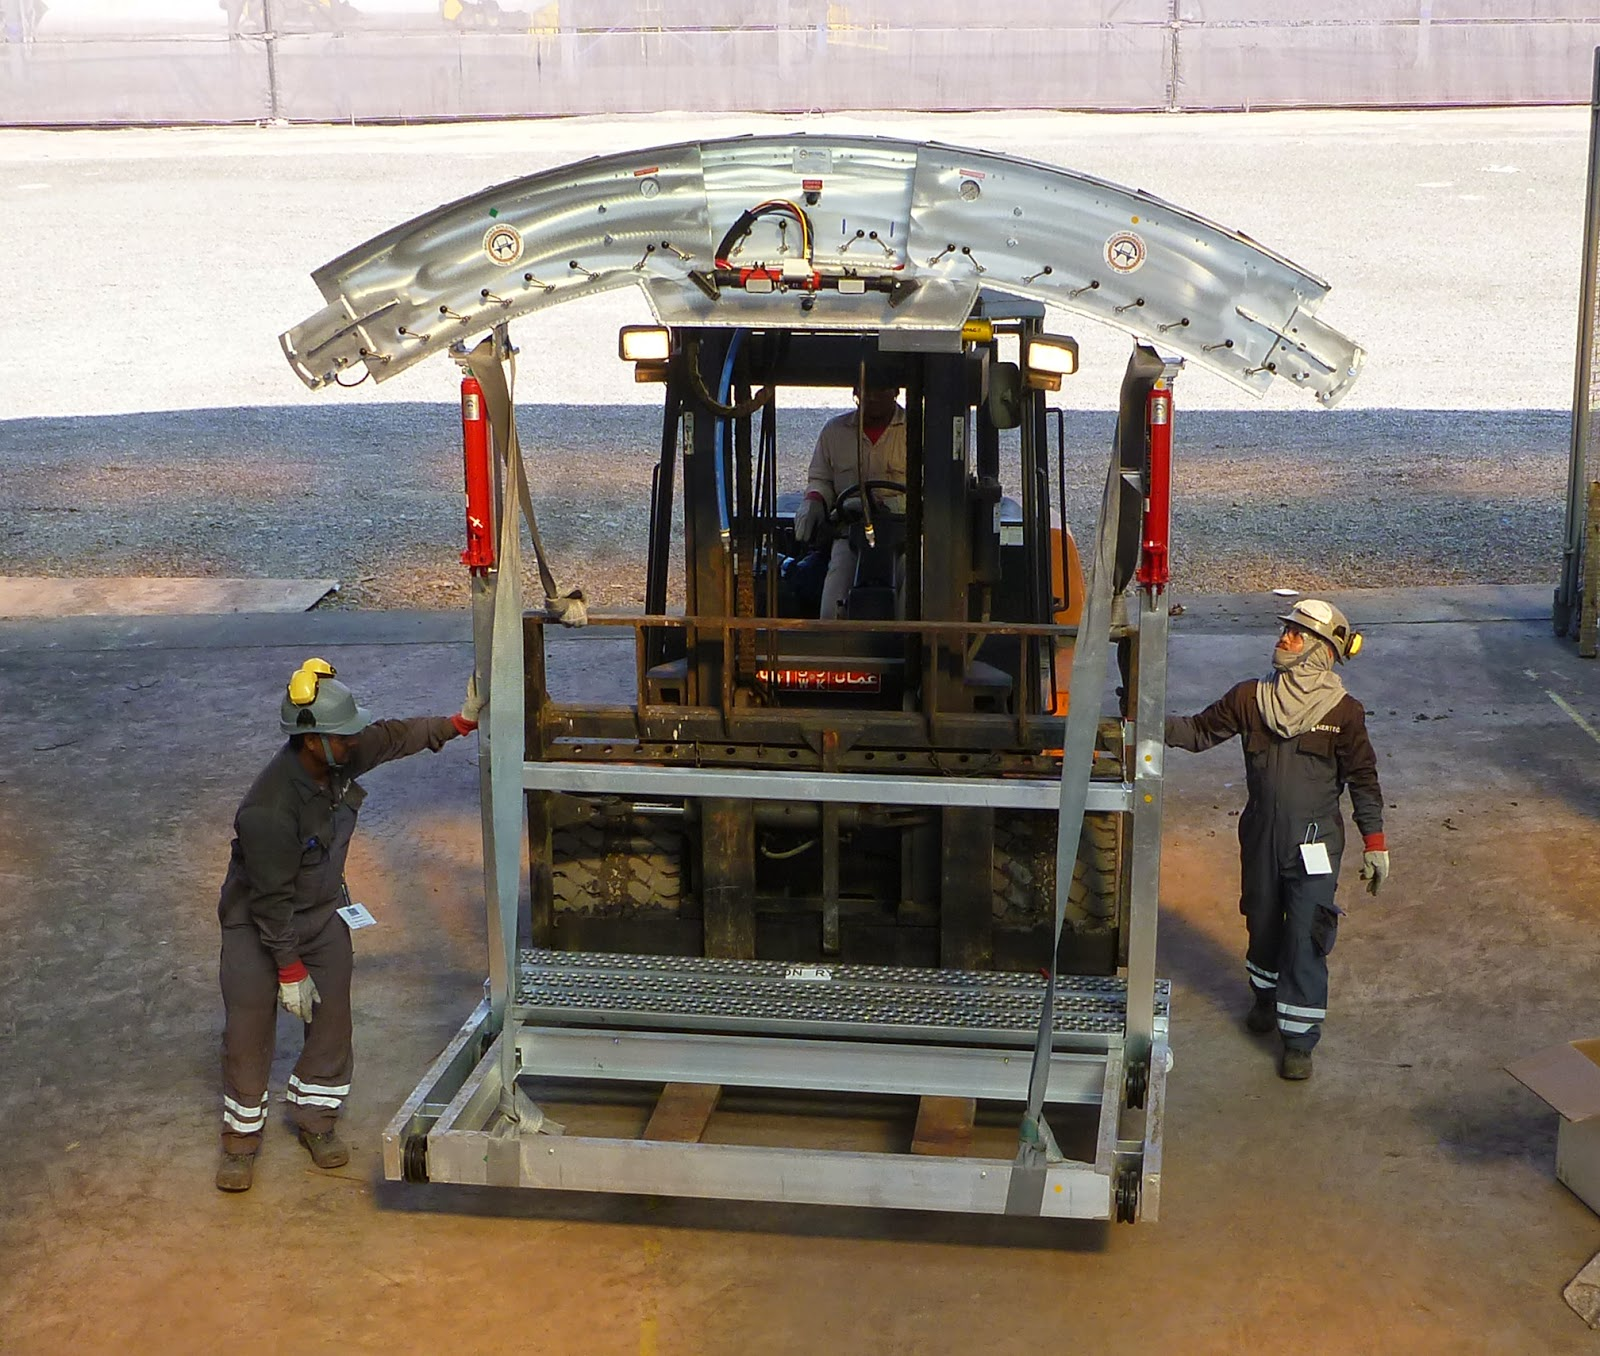 Installation of the center arch with the support of 3 ton capacity fork lift.